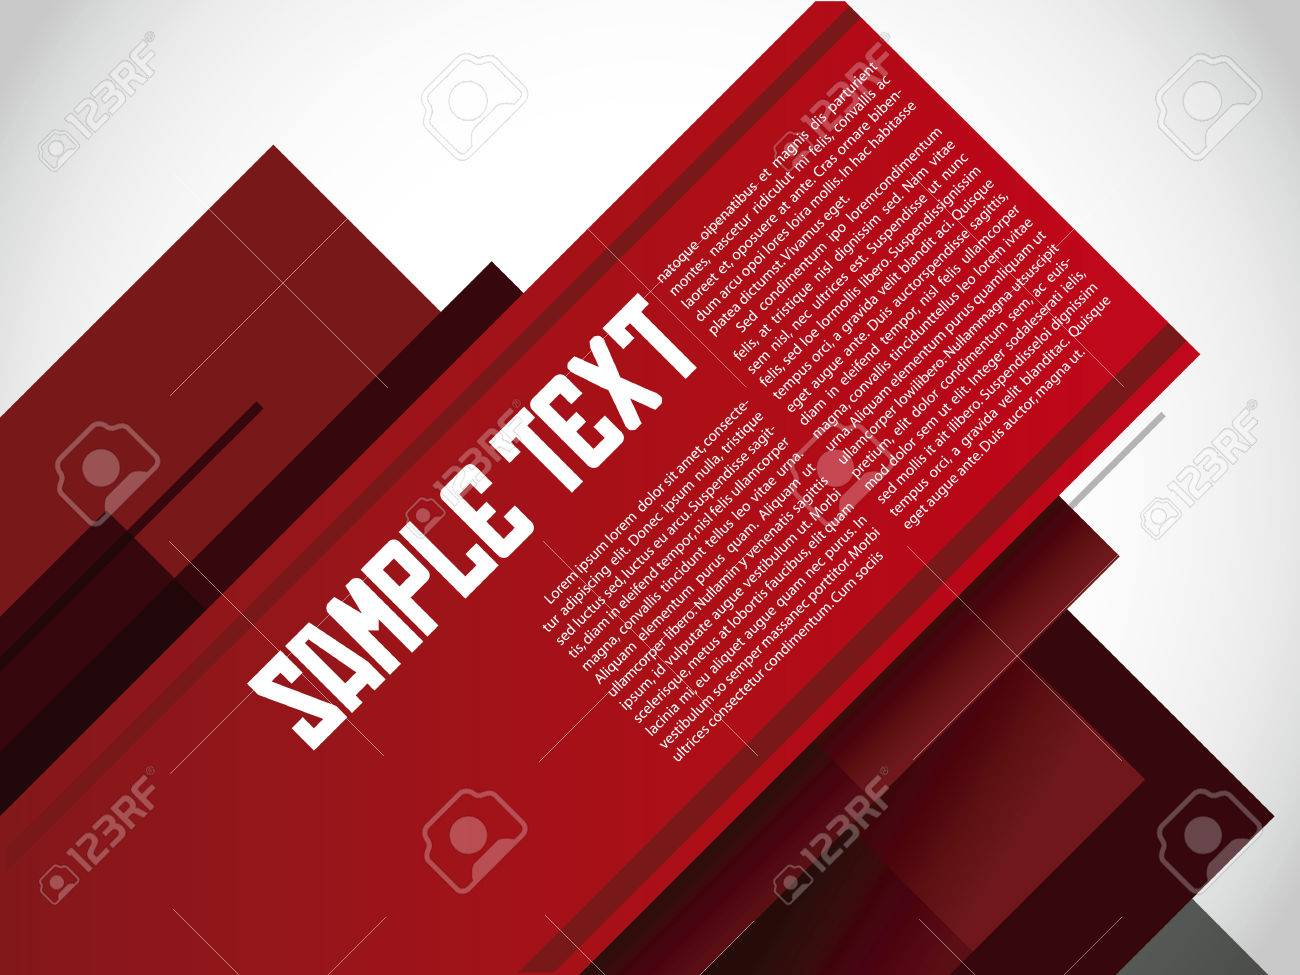 Poster design vector graphics - Poster Design Vector Graphics Russian Layout Print Poster Template Vector Design Layout Design Background Graphics